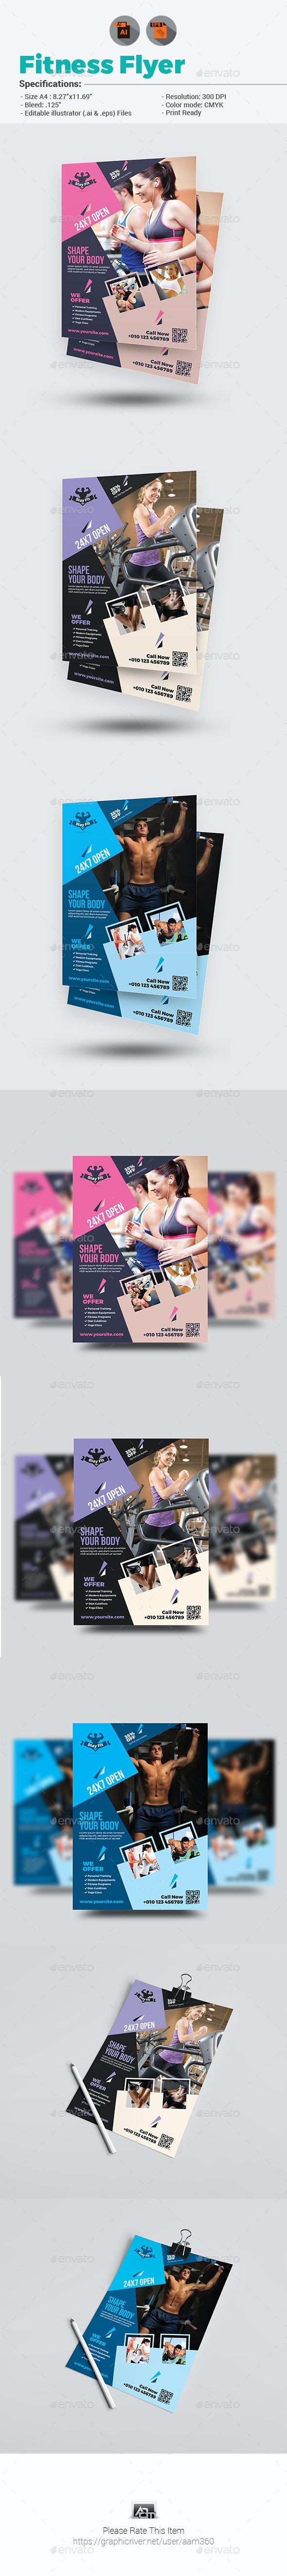 Body Fitness Club Flyer - Sports Events